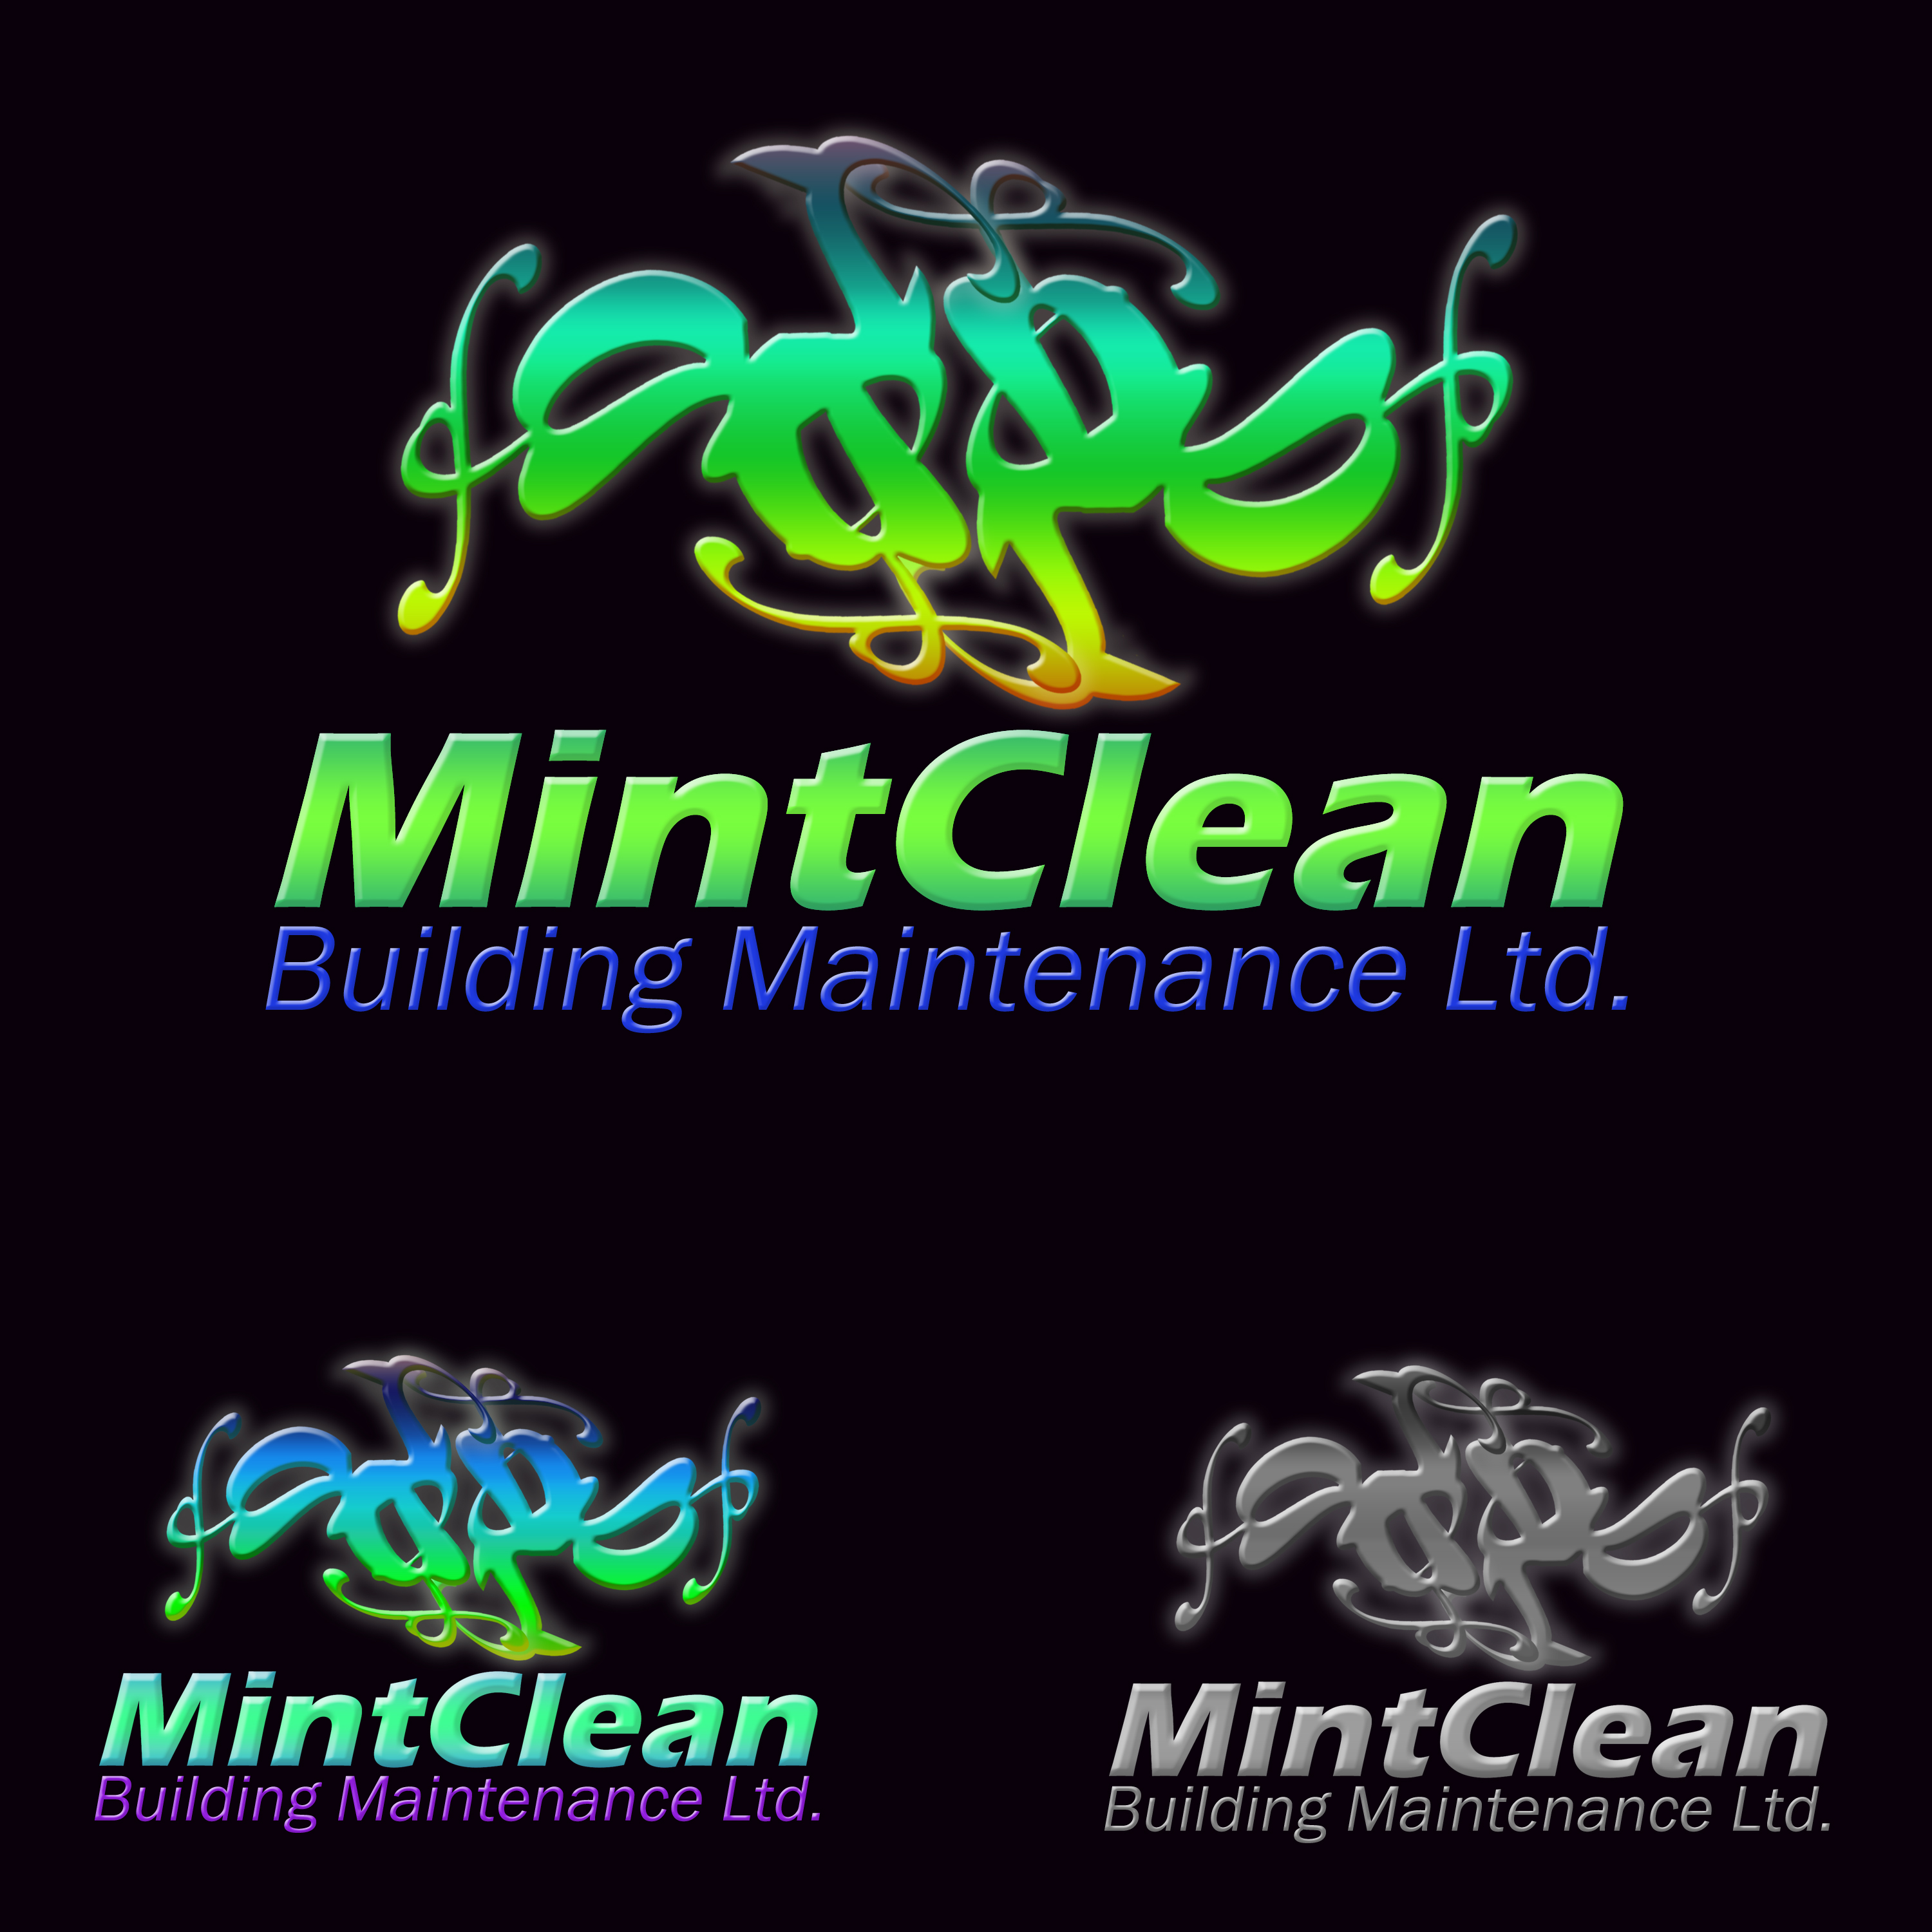 Logo Design by Roberto Sibbaluca - Entry No. 45 in the Logo Design Contest MintClean Building Maintenance Ltd. Logo Design.